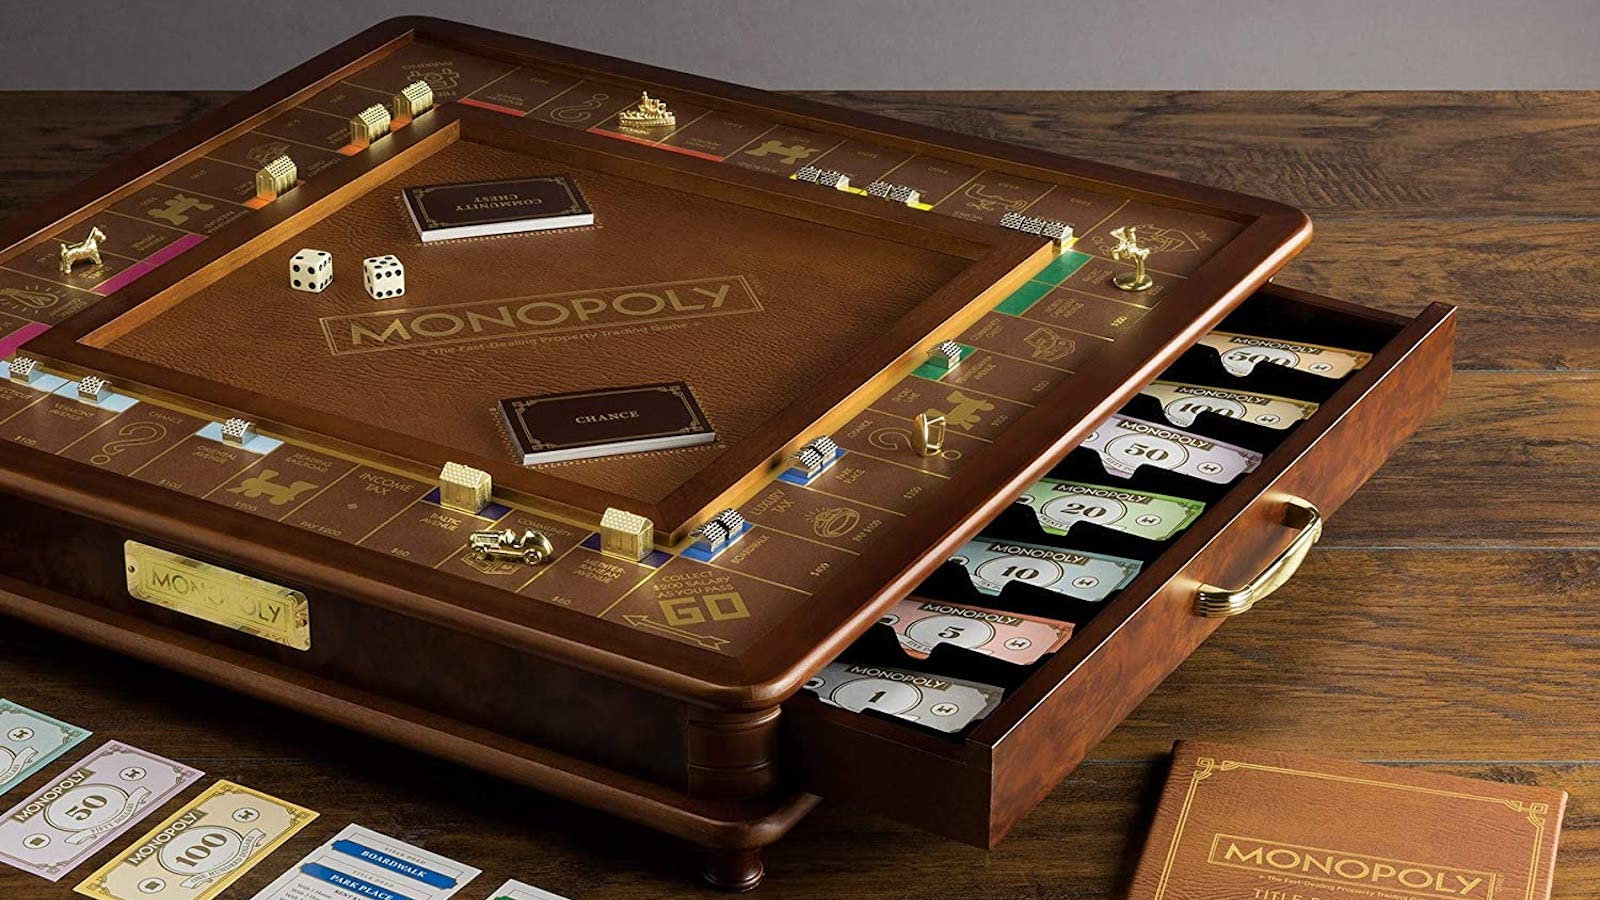 10 Board game gadgets you need to see